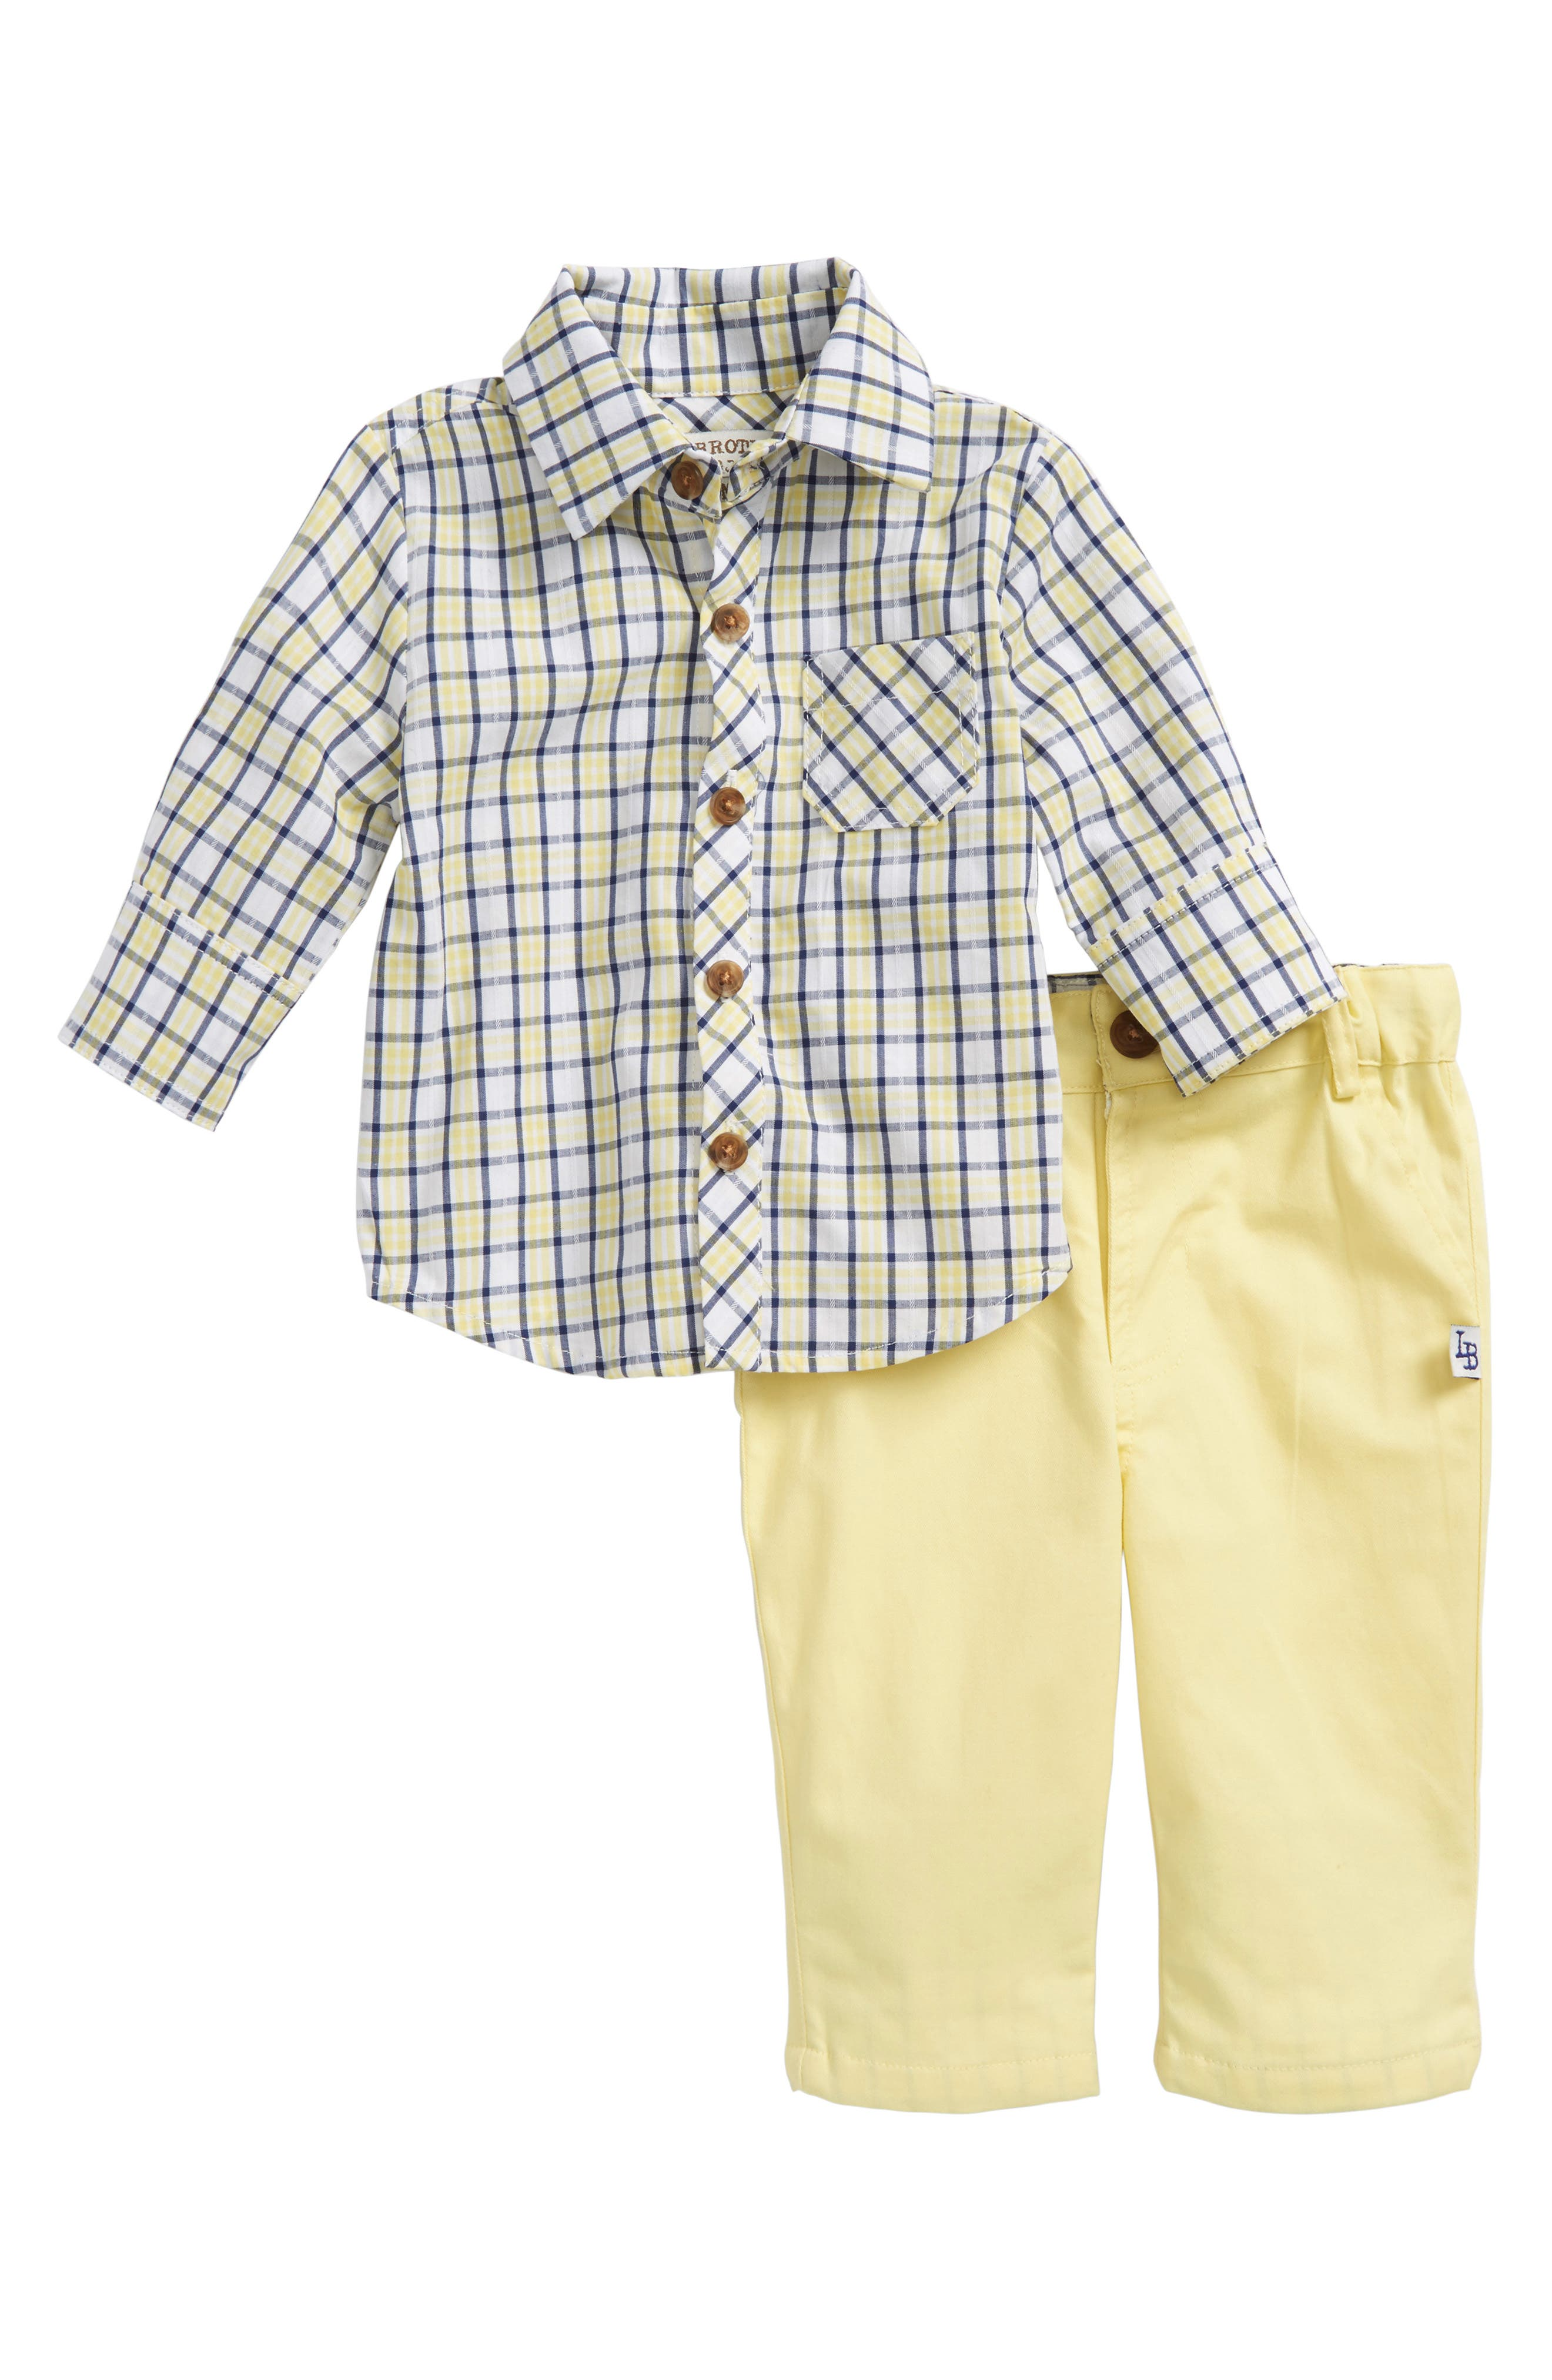 Plaid Top & Pants Set,                             Main thumbnail 1, color,                             Yellow/ Blue